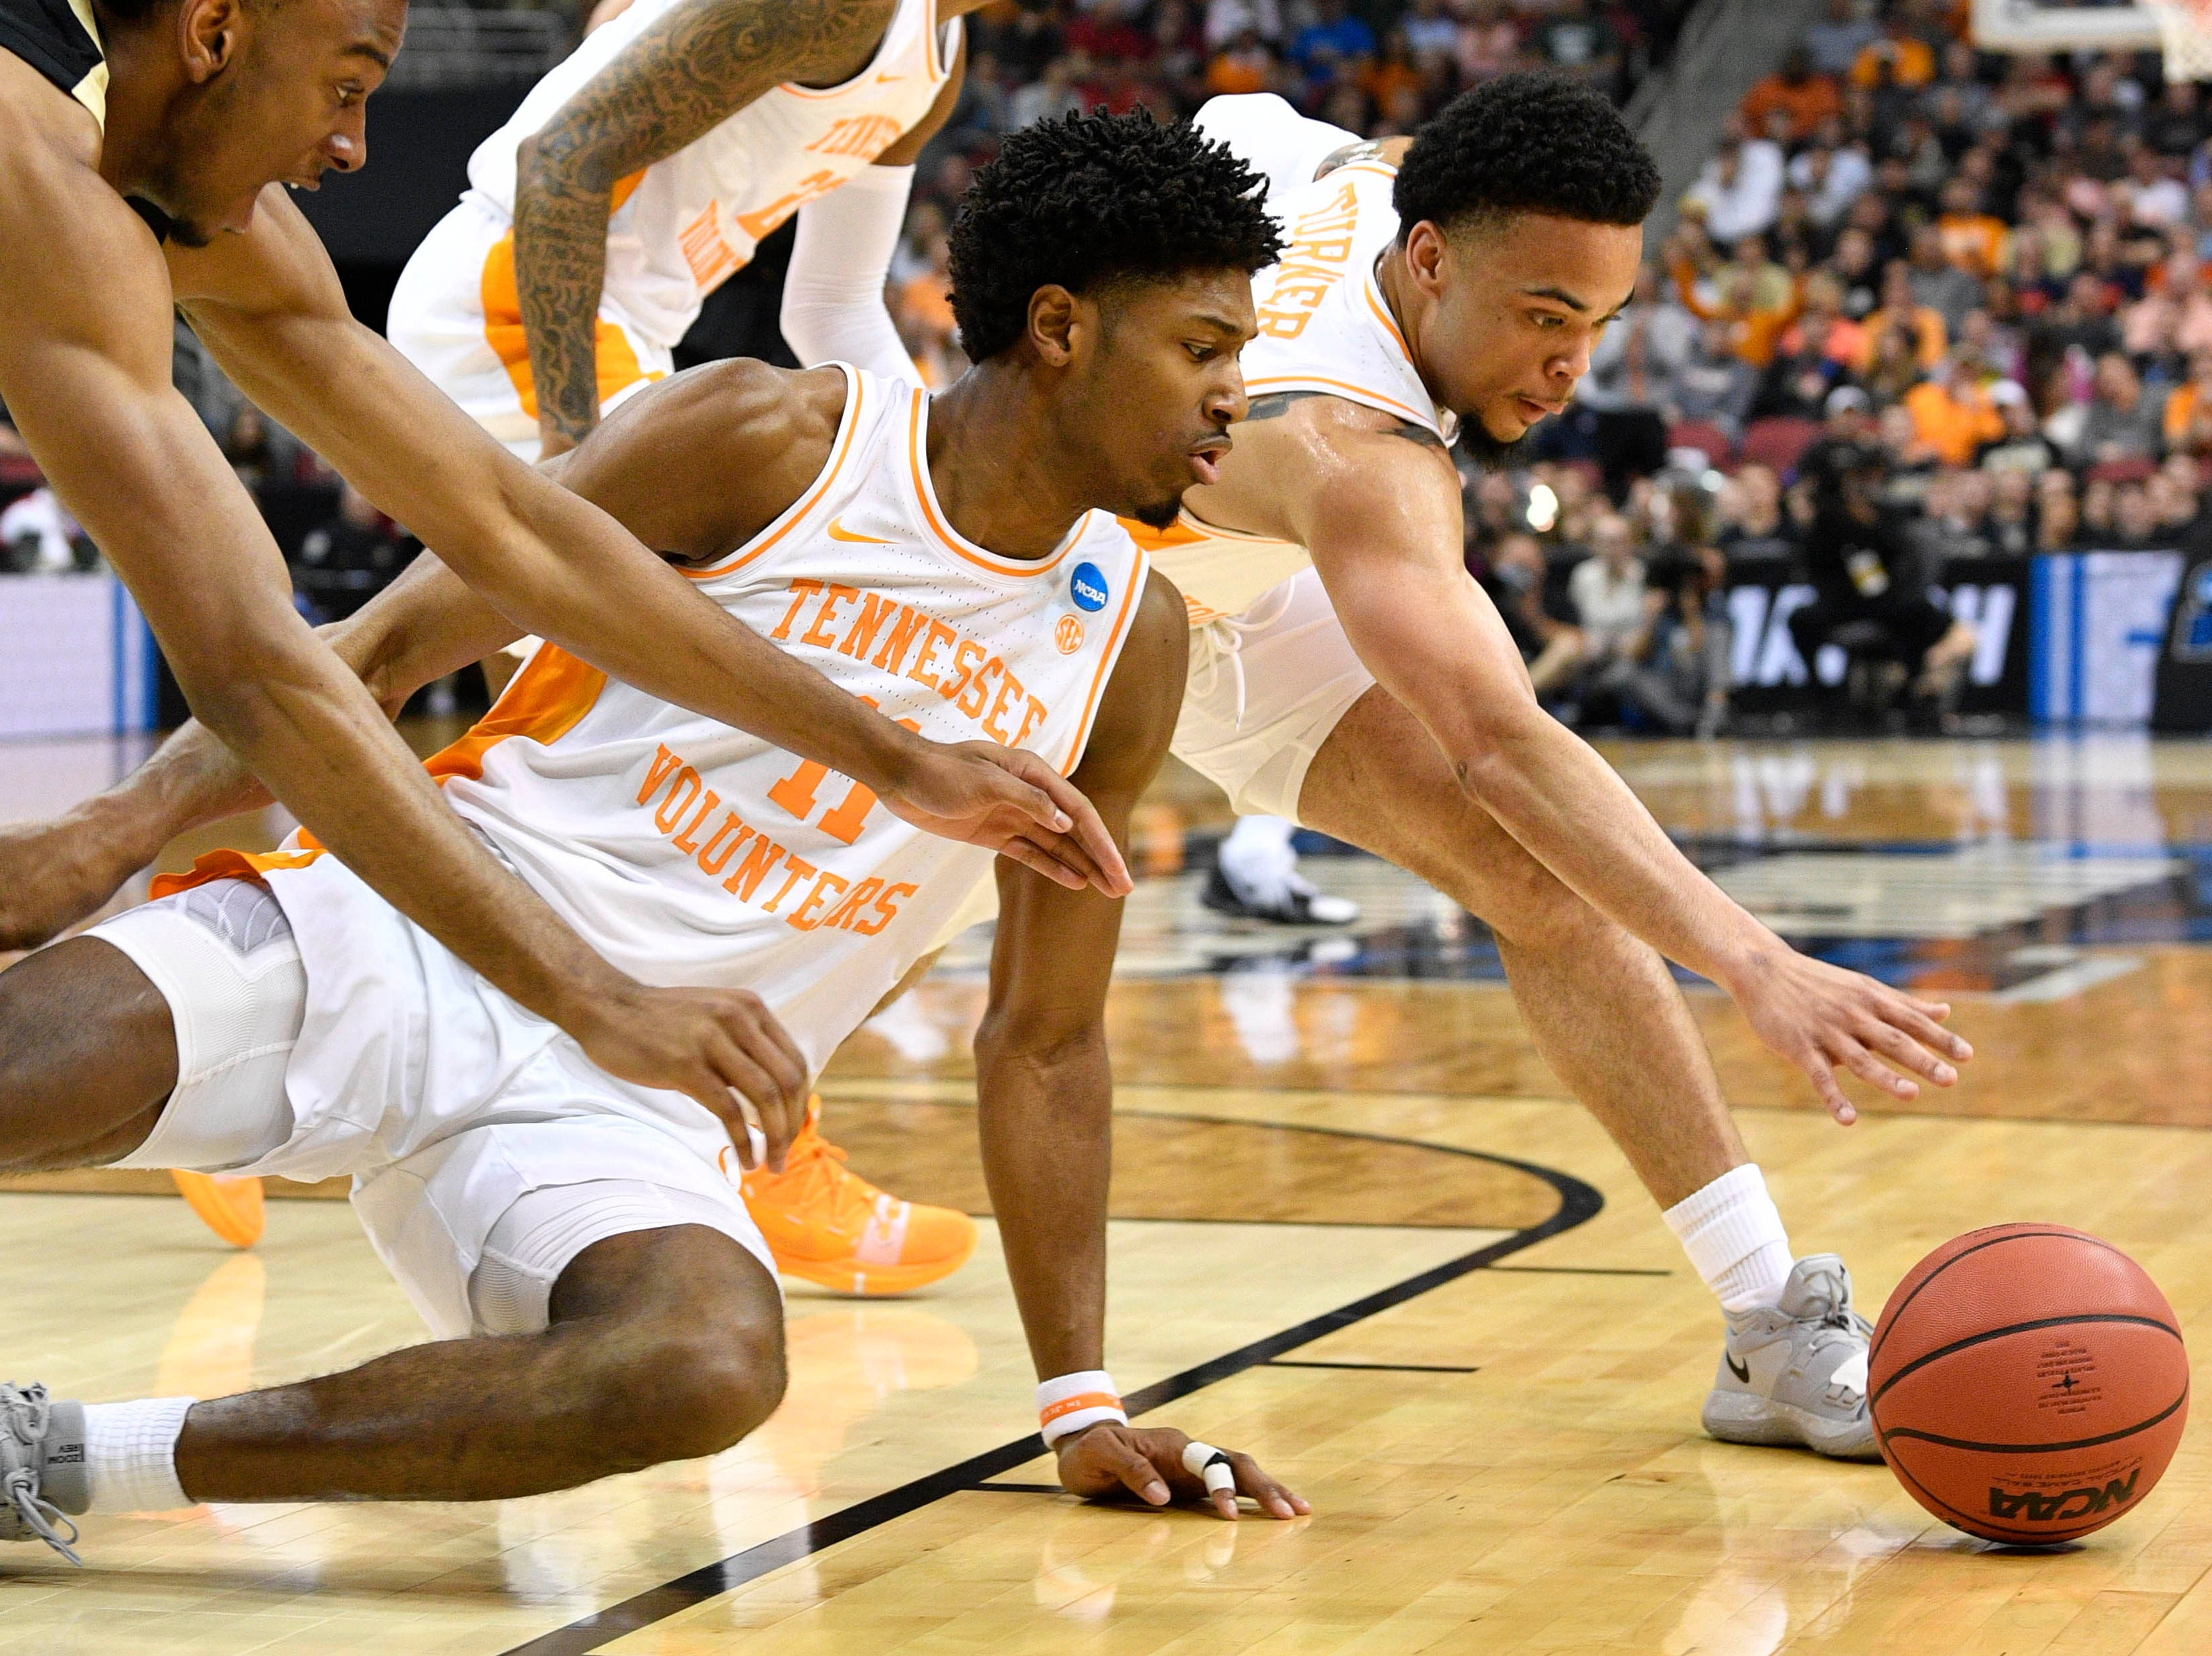 Mar 28, 2019; Louisville, KY, United States; Tennessee Volunteers guard Lamonte Turner (1) and forward Kyle Alexander (11) go after a loose ball during the first half in the semifinals of the south regional against the Purdue Boilermakers of the 2019 NCAA Tournament at KFC Yum Center. Mandatory Credit: Jamie Rhodes-USA TODAY Sports